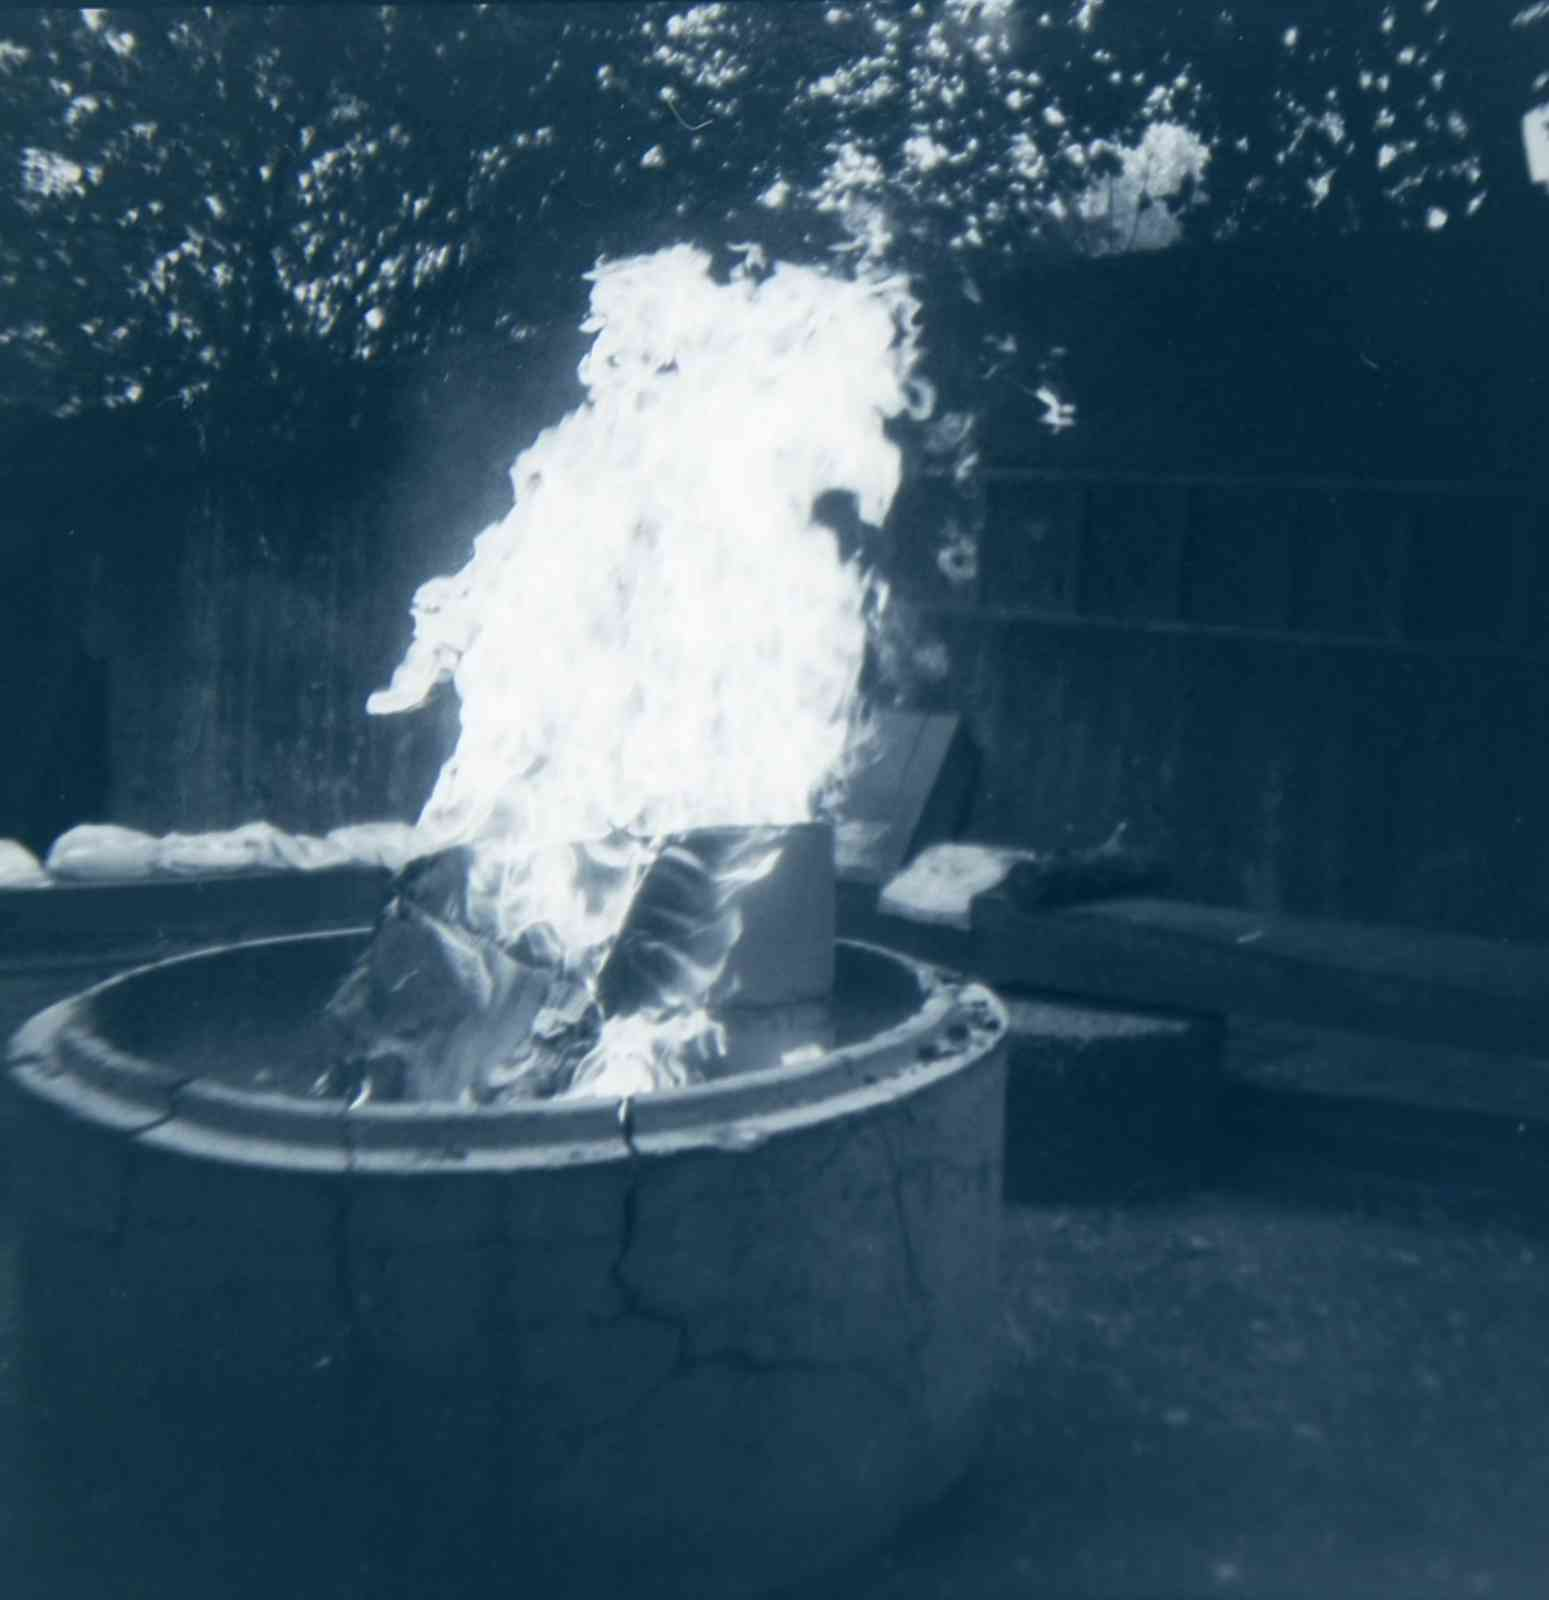 Analoge Fotografie - Fire